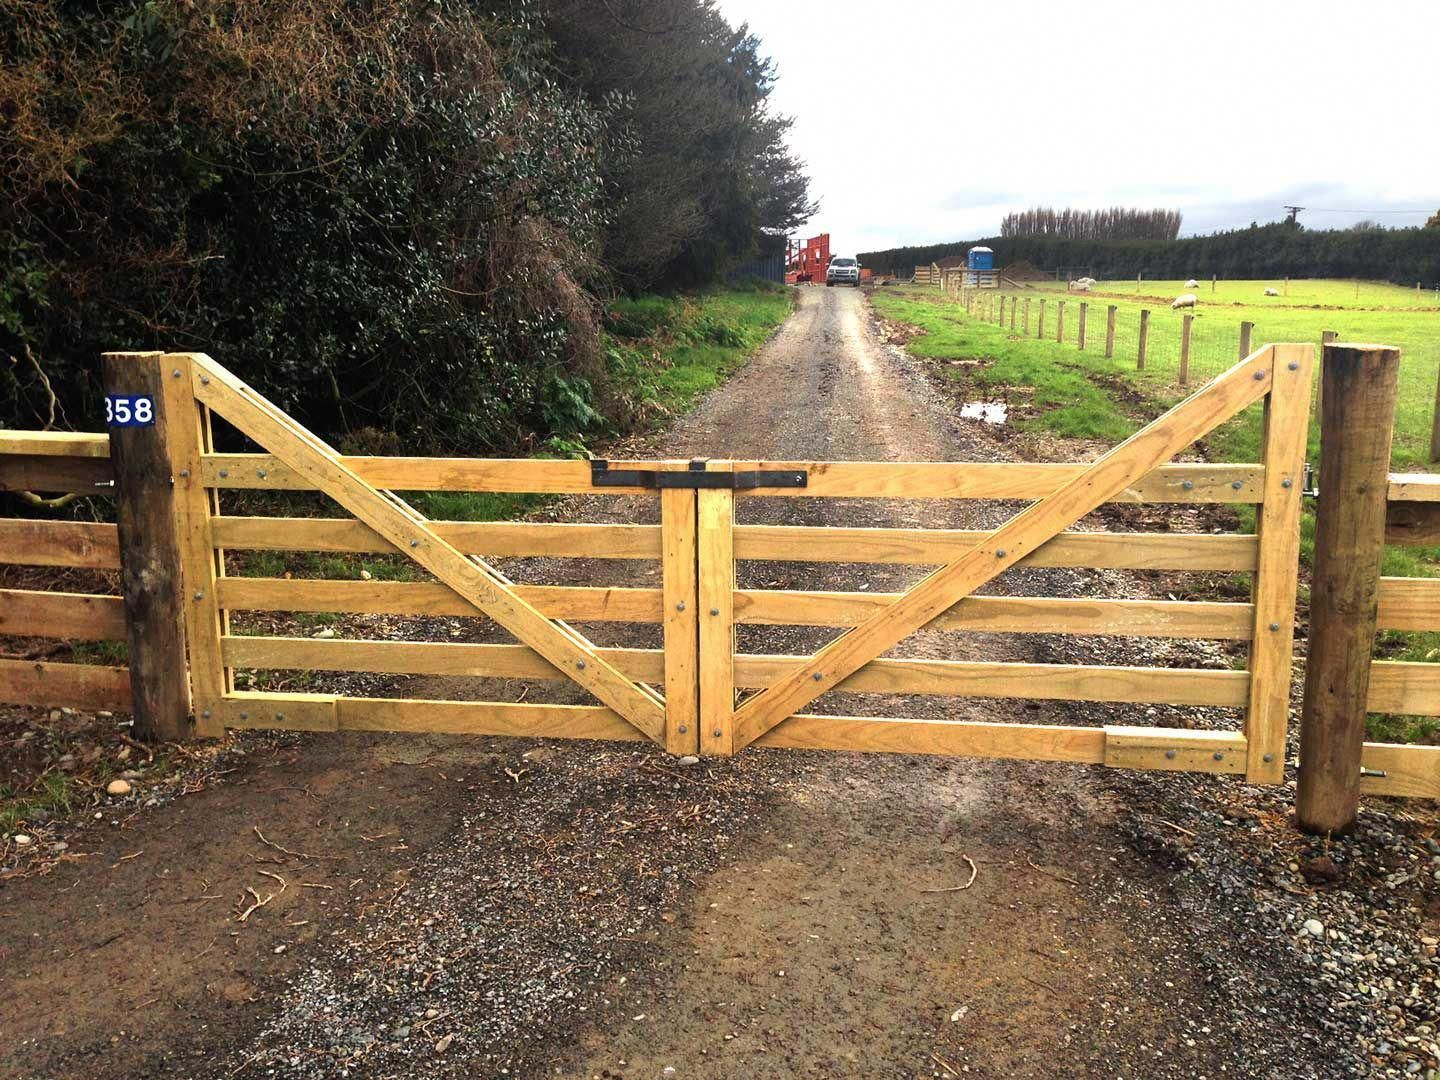 Read Our Website Page For Way More With Regard To This Delightful Fence Gate Fencegate Farm Fence Gate Farm Fence Backyard Fences